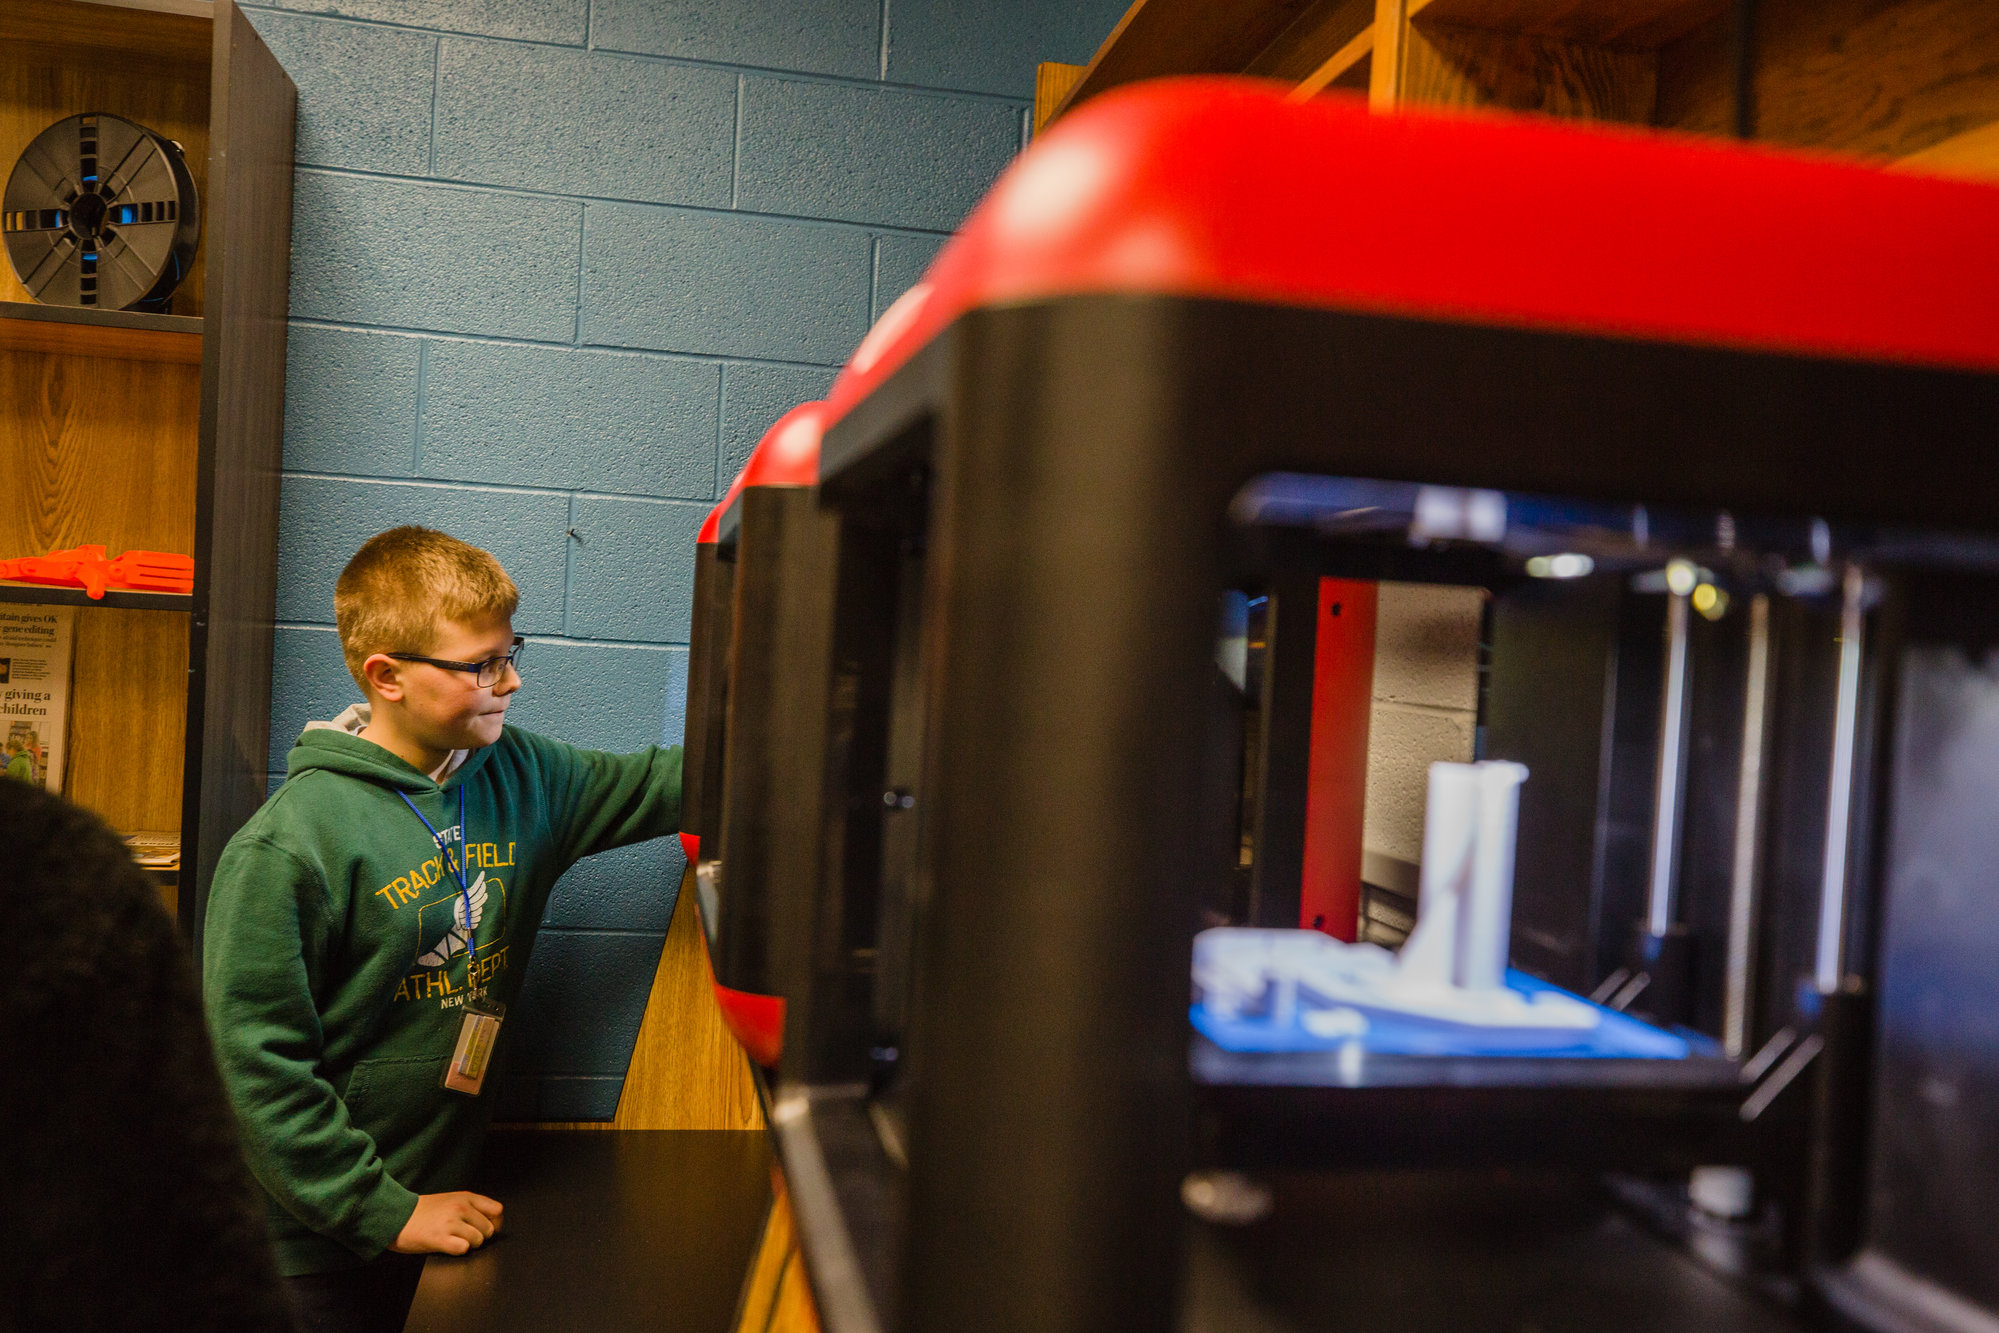 Kaden Burns, a seventh-grader at Alice Drive Middle, serves as the lab technician for the 3D printing lab at the school.